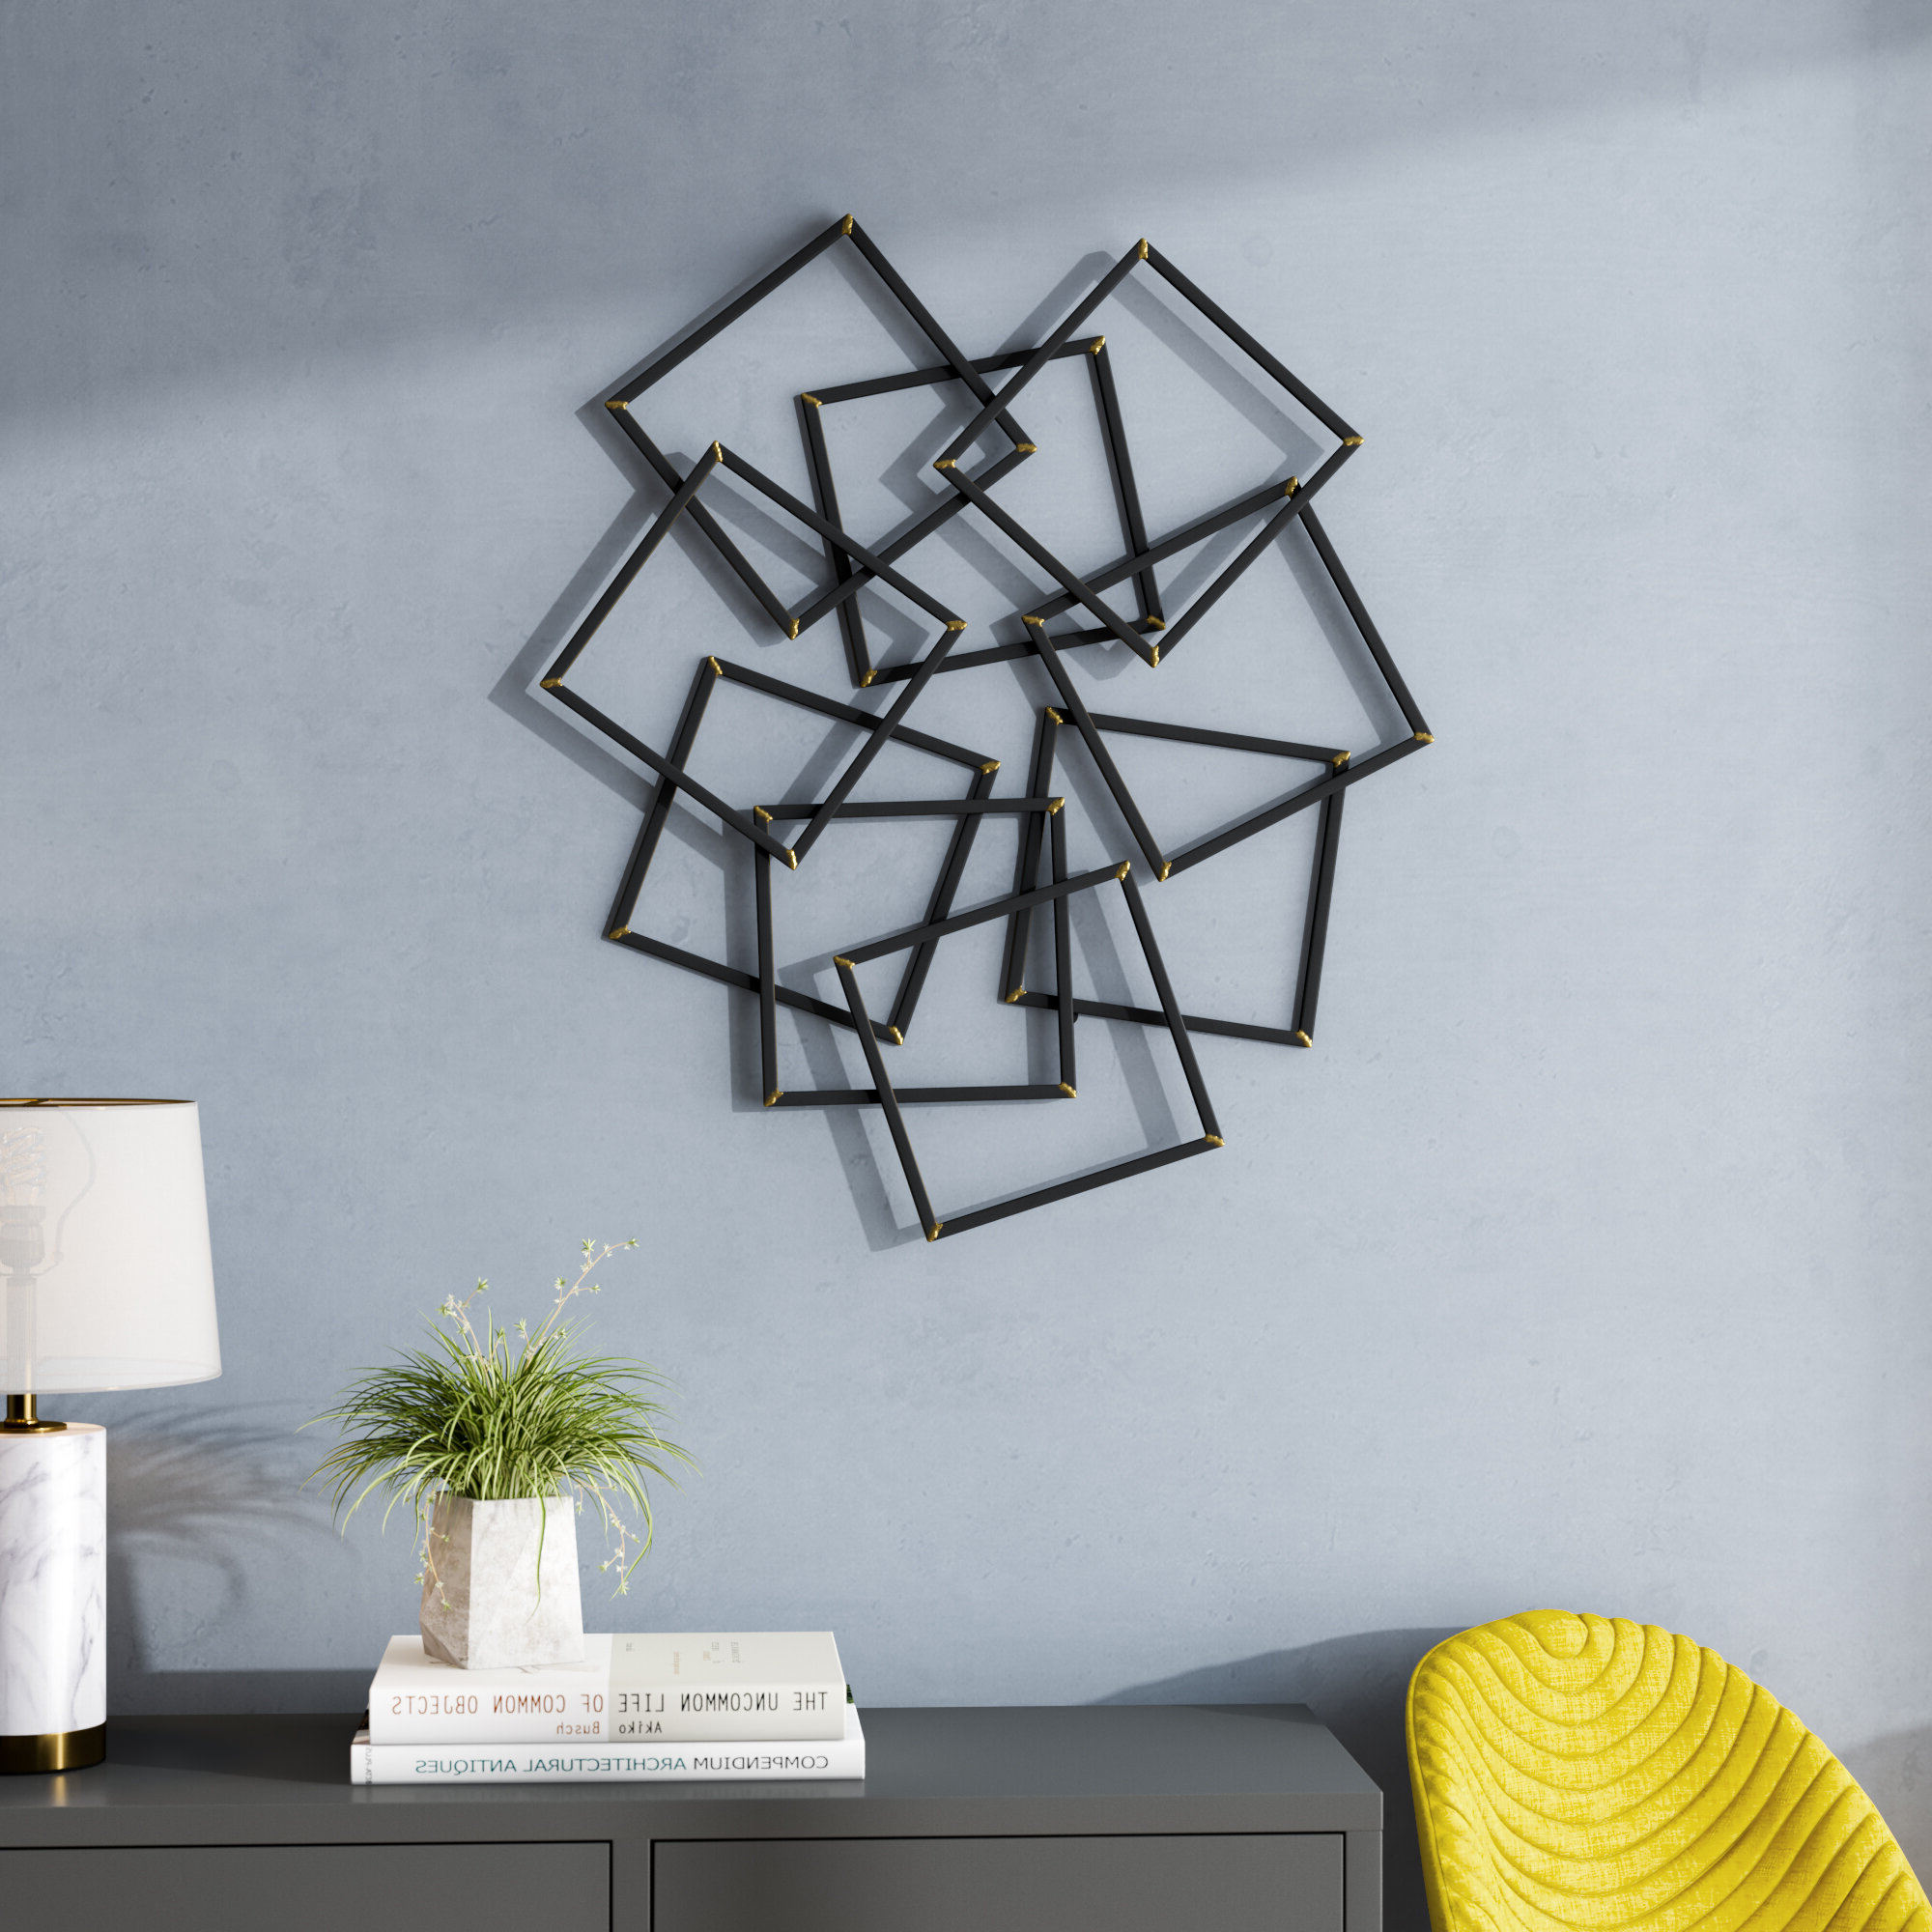 Contemporary Painted Wall Décor Regarding Most Current Wall Décor By Brayden Studio (View 7 of 20)